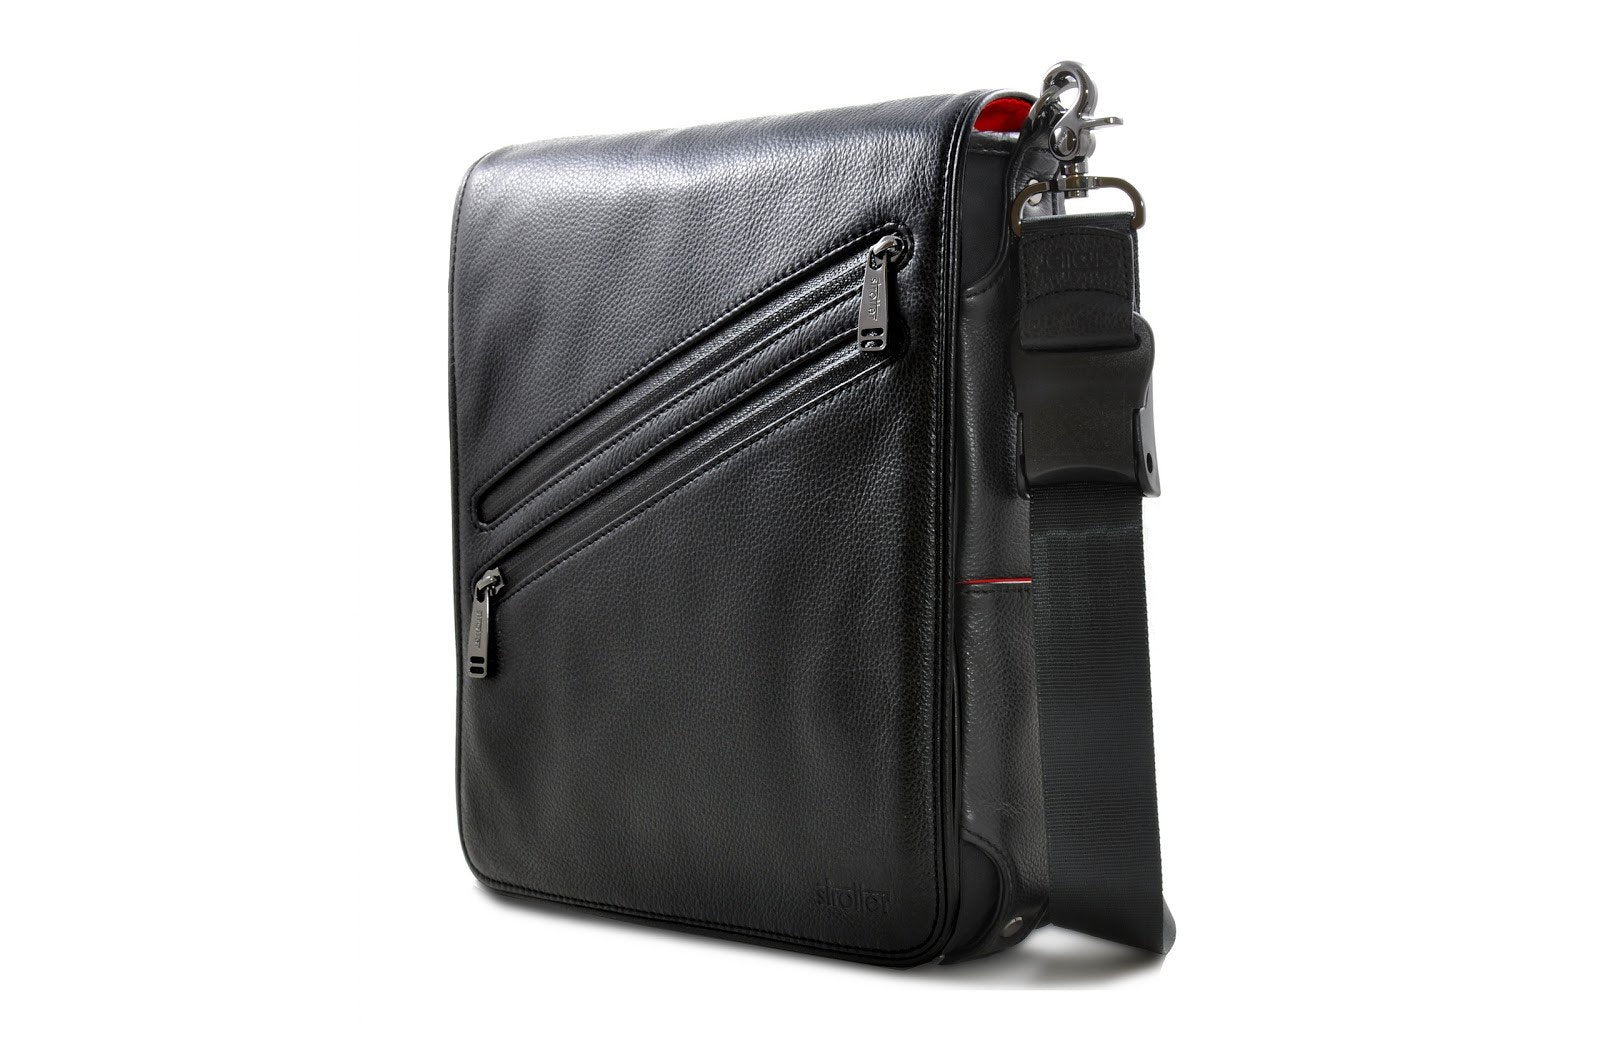 iPad leather messenger bag - Platforma G